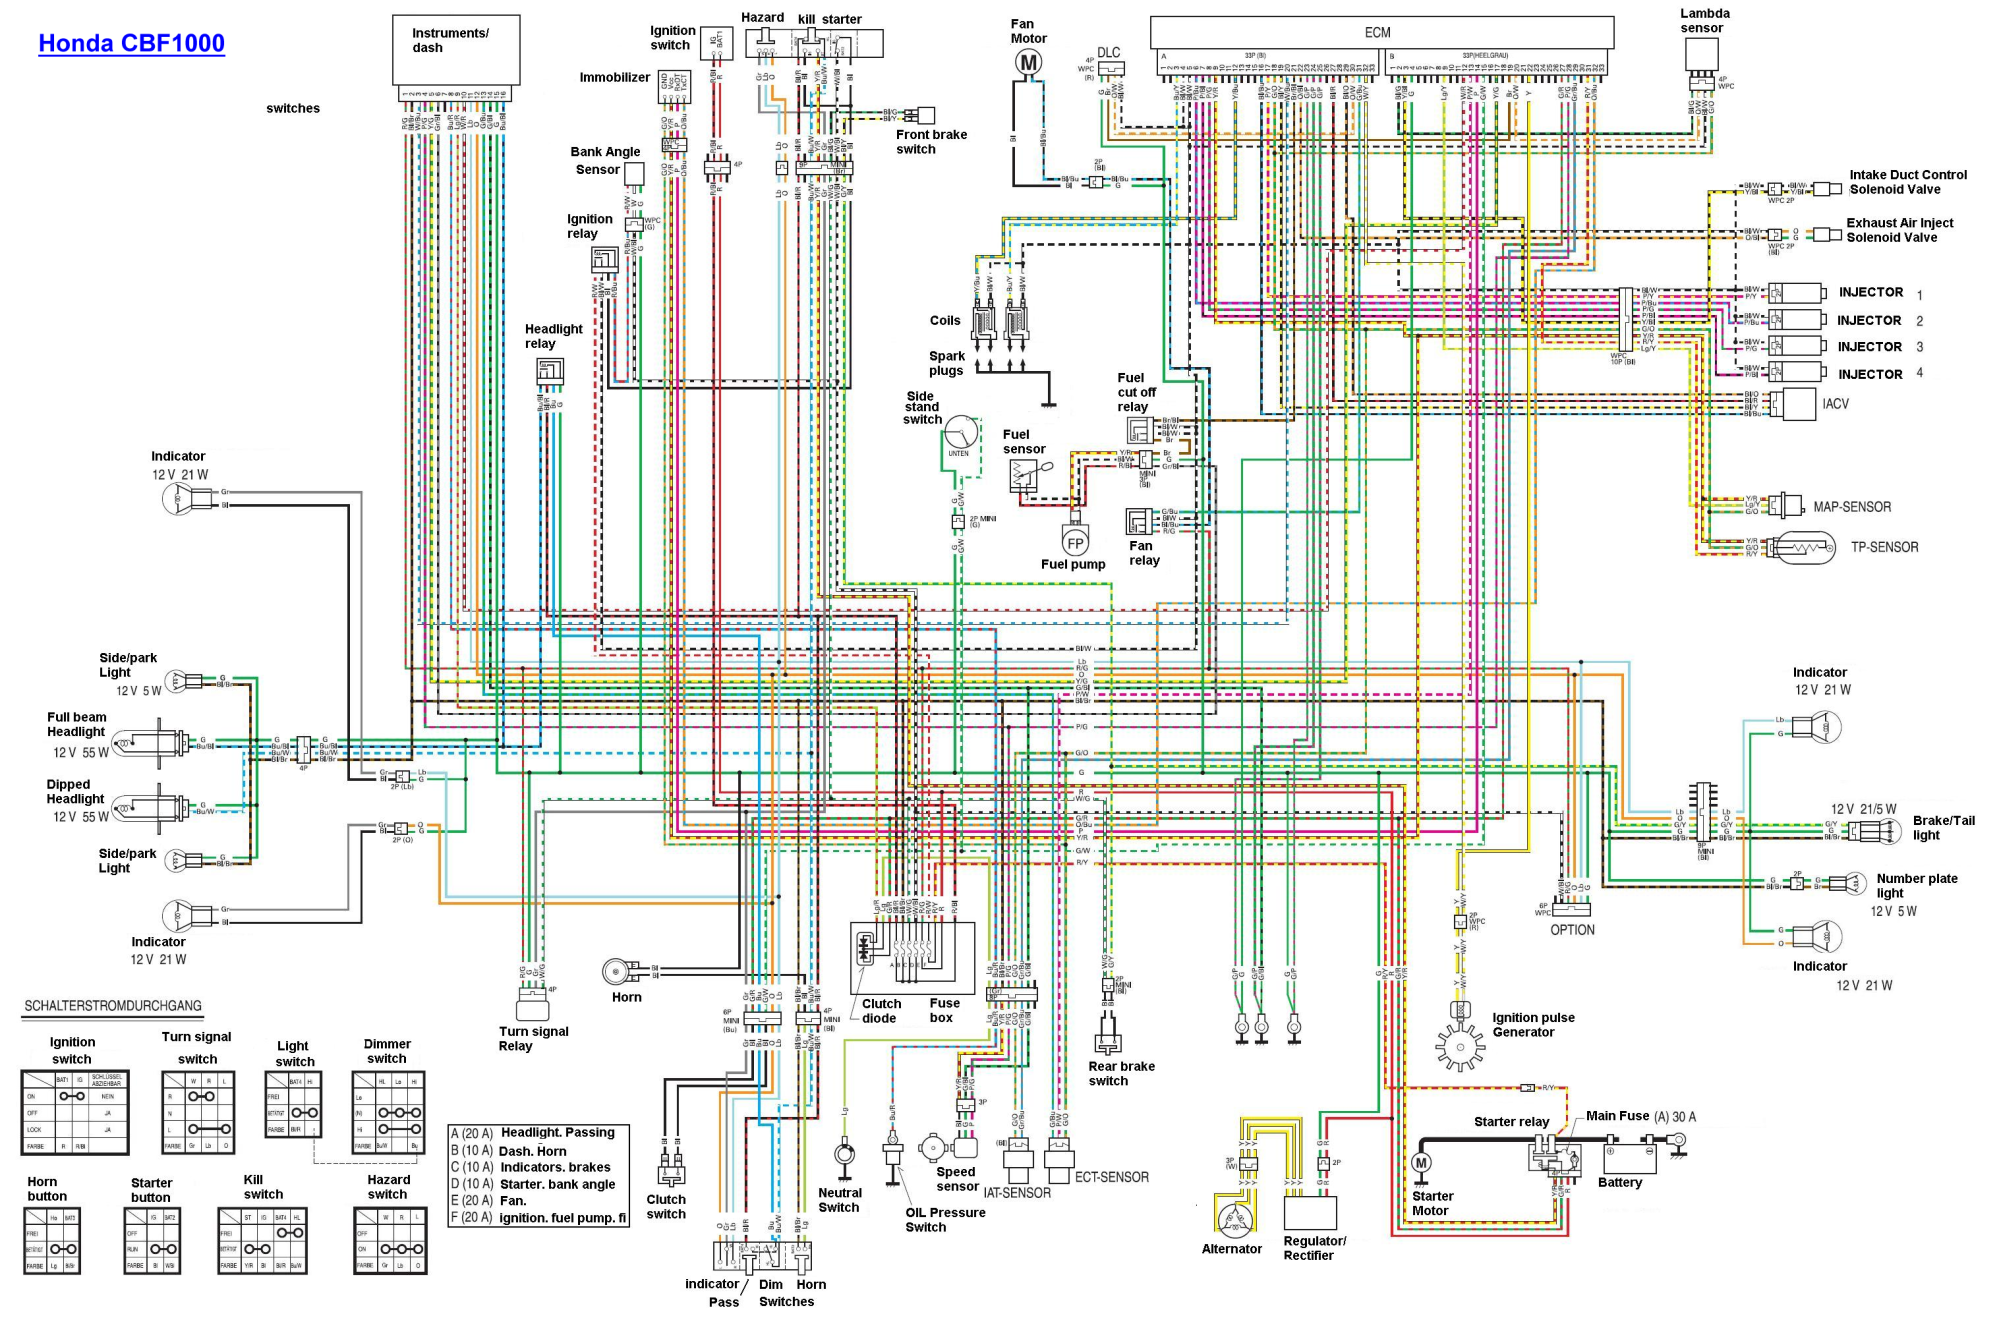 hight resolution of cbf1000 wiring diagrameach diagram is identical but in a different format